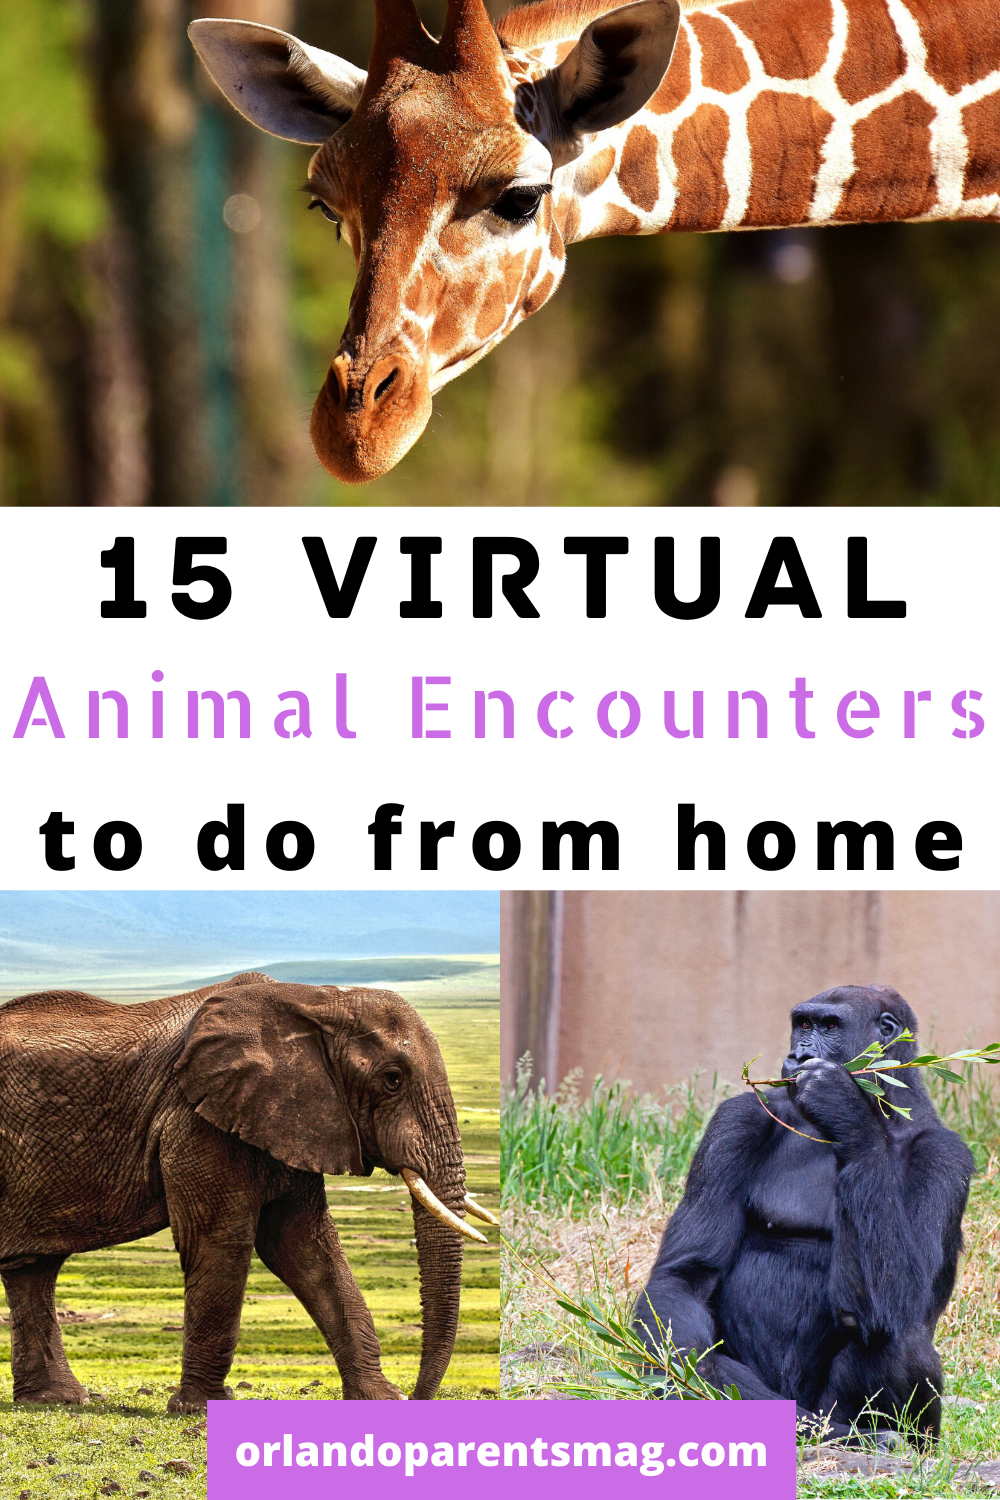 15 Virtual Animal Encounters You Can Do From Home